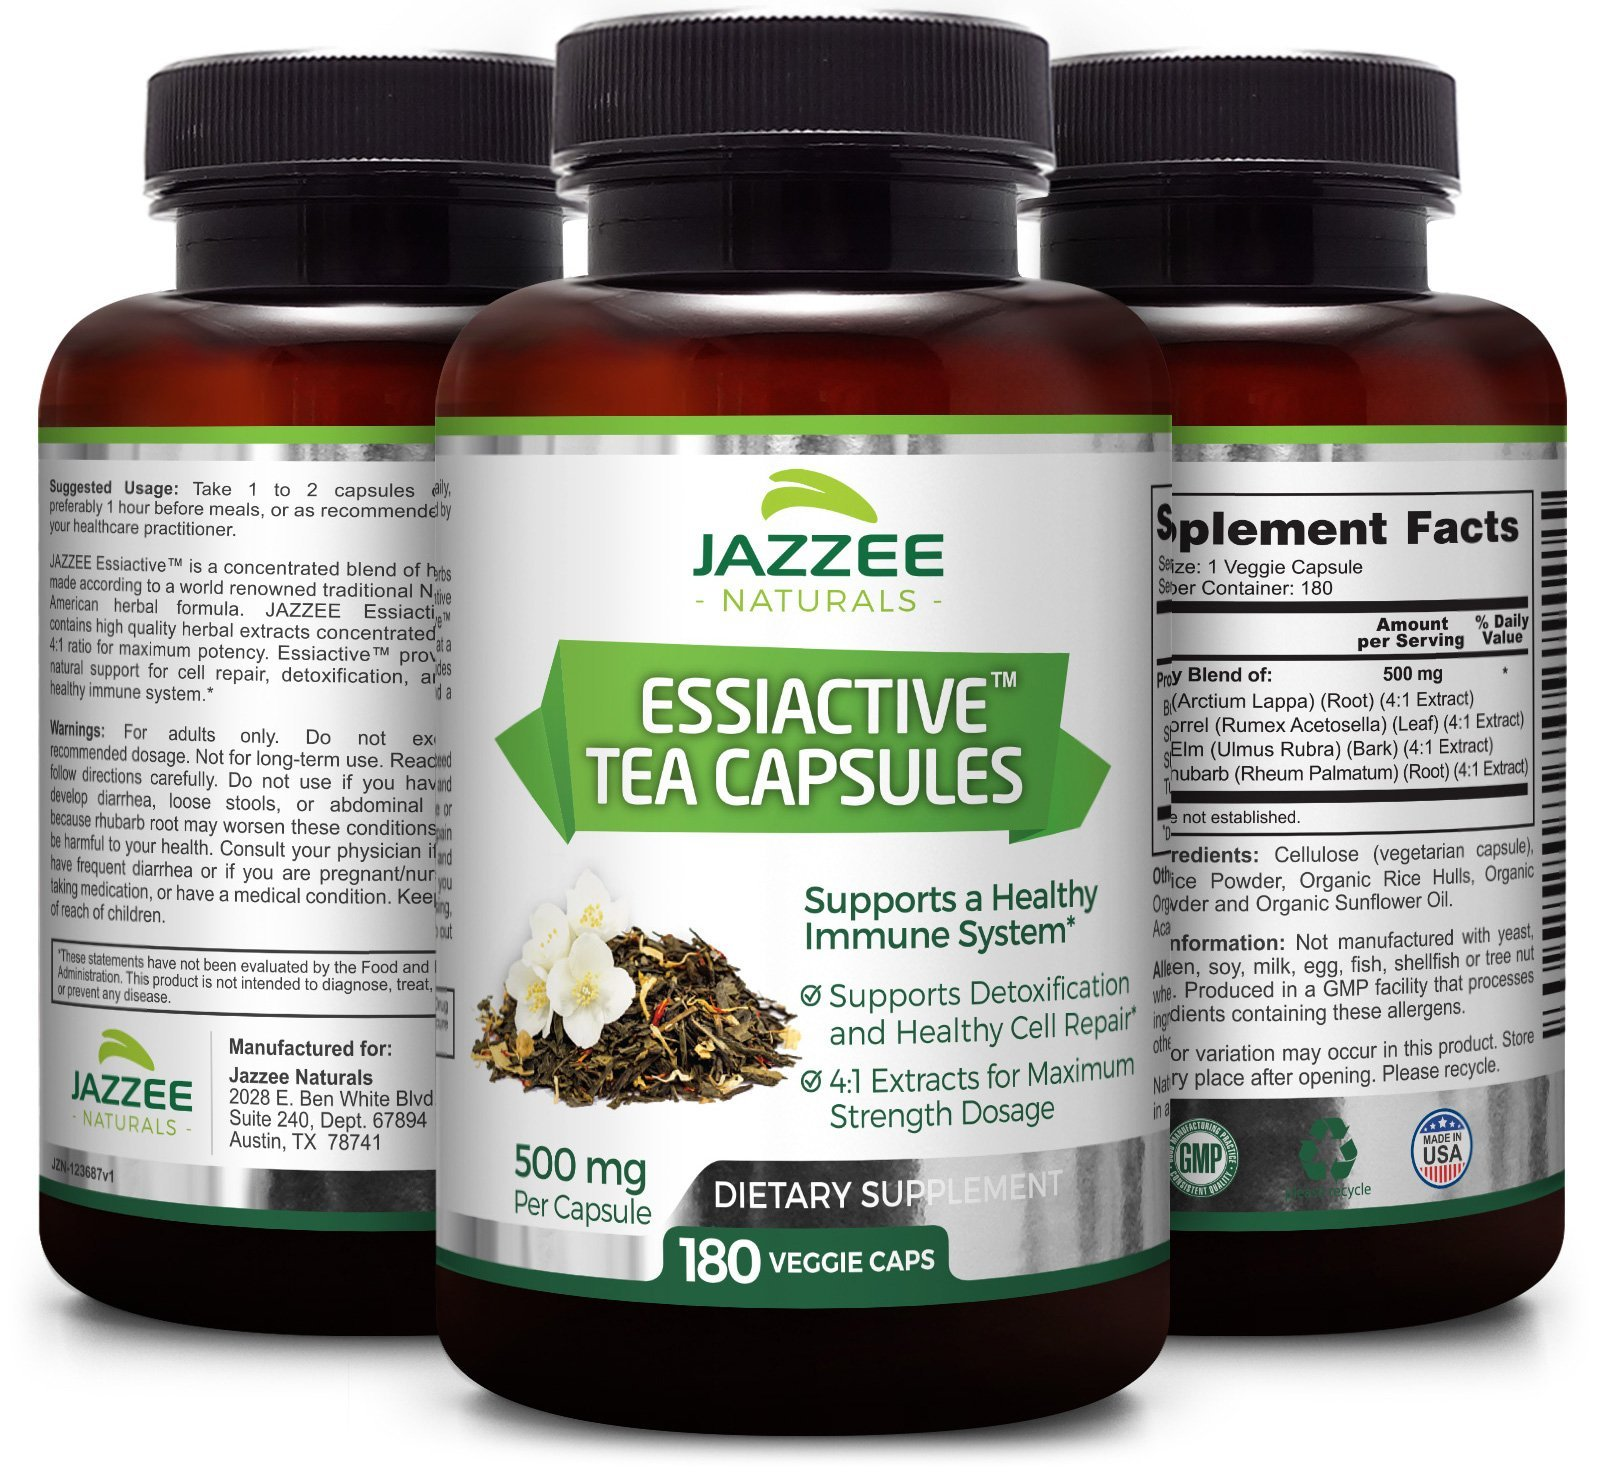 Essiac Tea Capsules | 500 mg per Capsule | 4X Concentrated Extract is the Strongest Essiac Supplement Available | 180 Veggie Capsules | Vegetarian / Vegan | Supports a Healthy Immune System